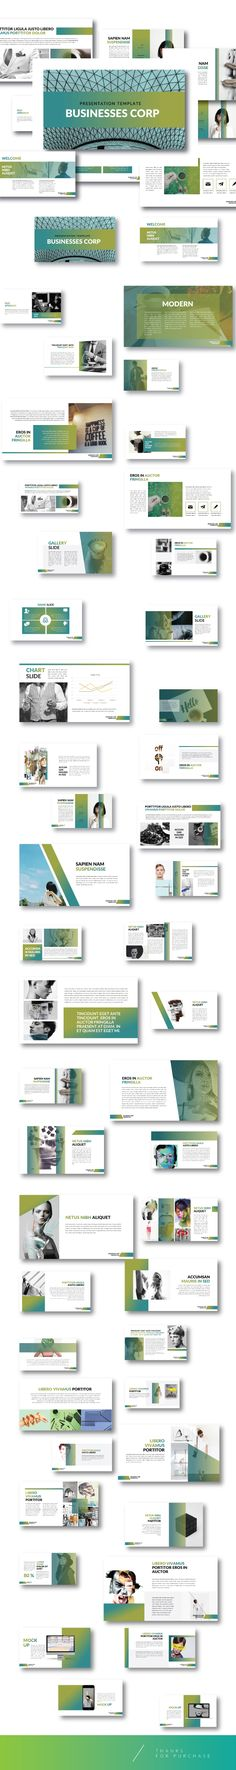 The Bussiness - Creative Keynote template - Business Keynote Templates